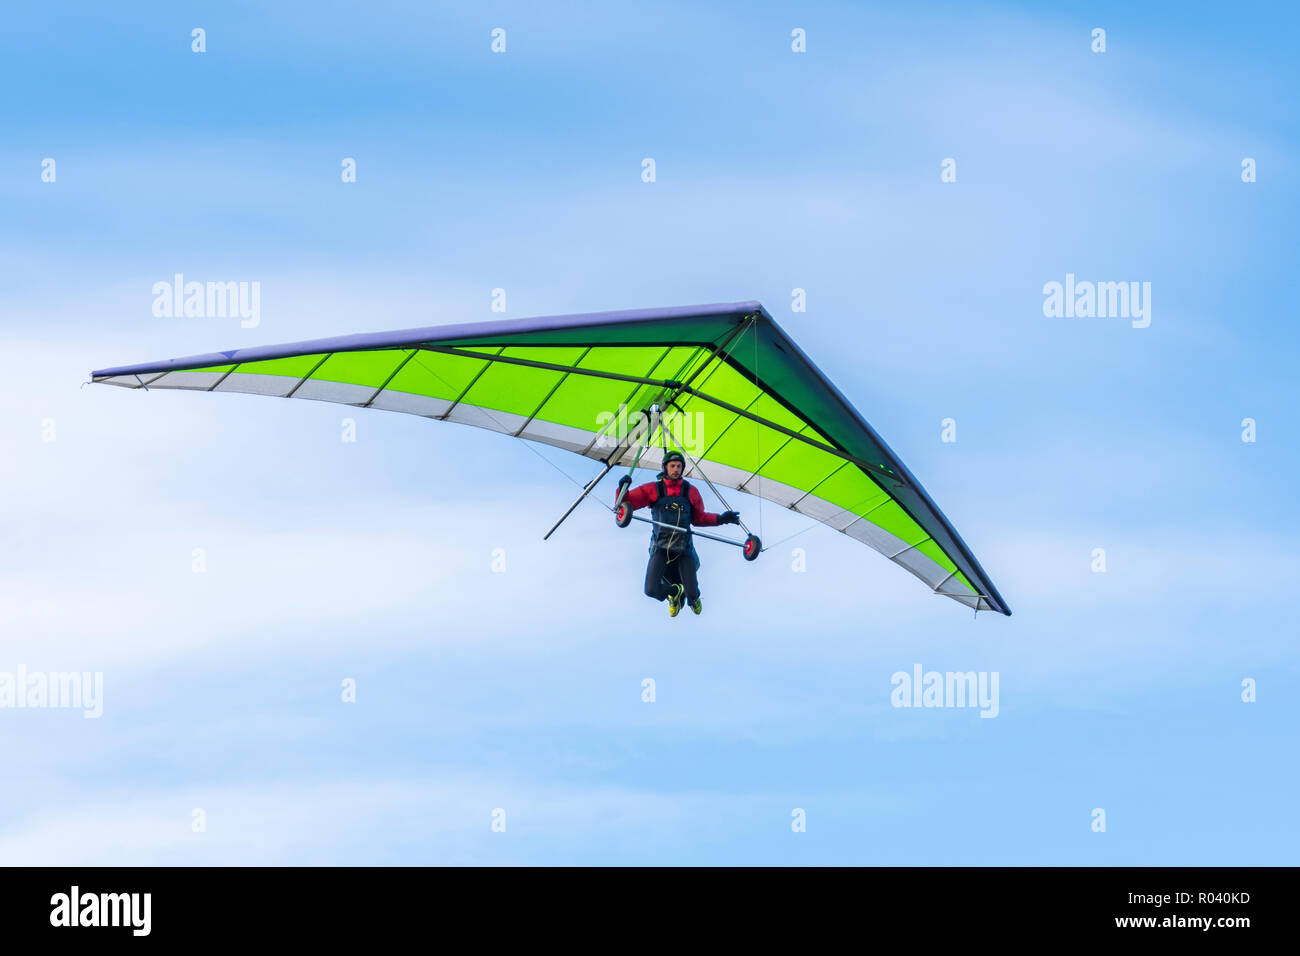 Man hang gliding in Autumn with blue sky, looking for a place to land on the South Downs in East Sussex, England, UK. - Stock Image